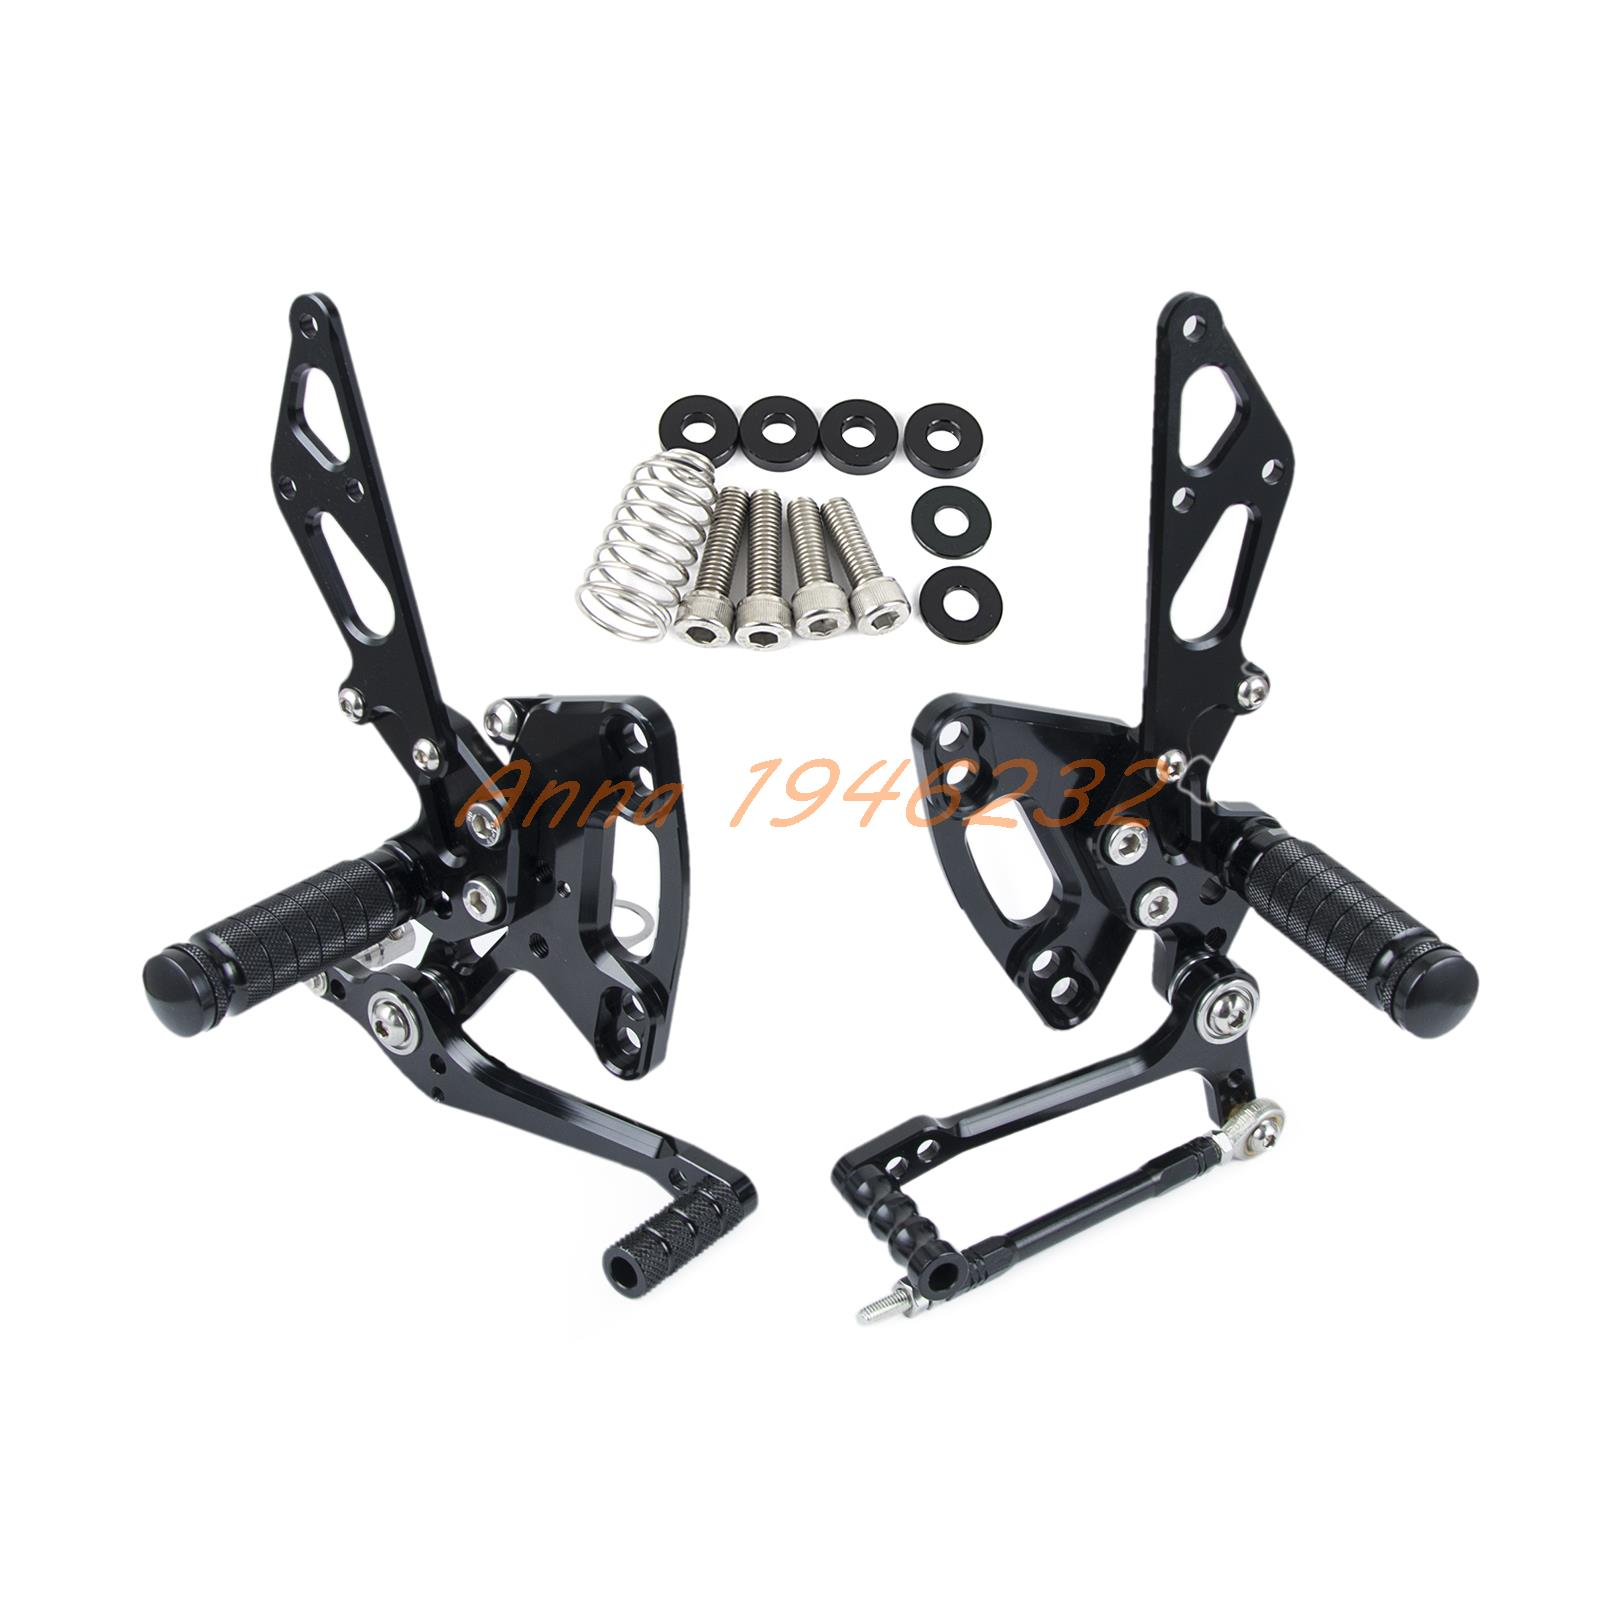 Silver CNC Racing Foot pegs Adjustable Rearset Rear Sets